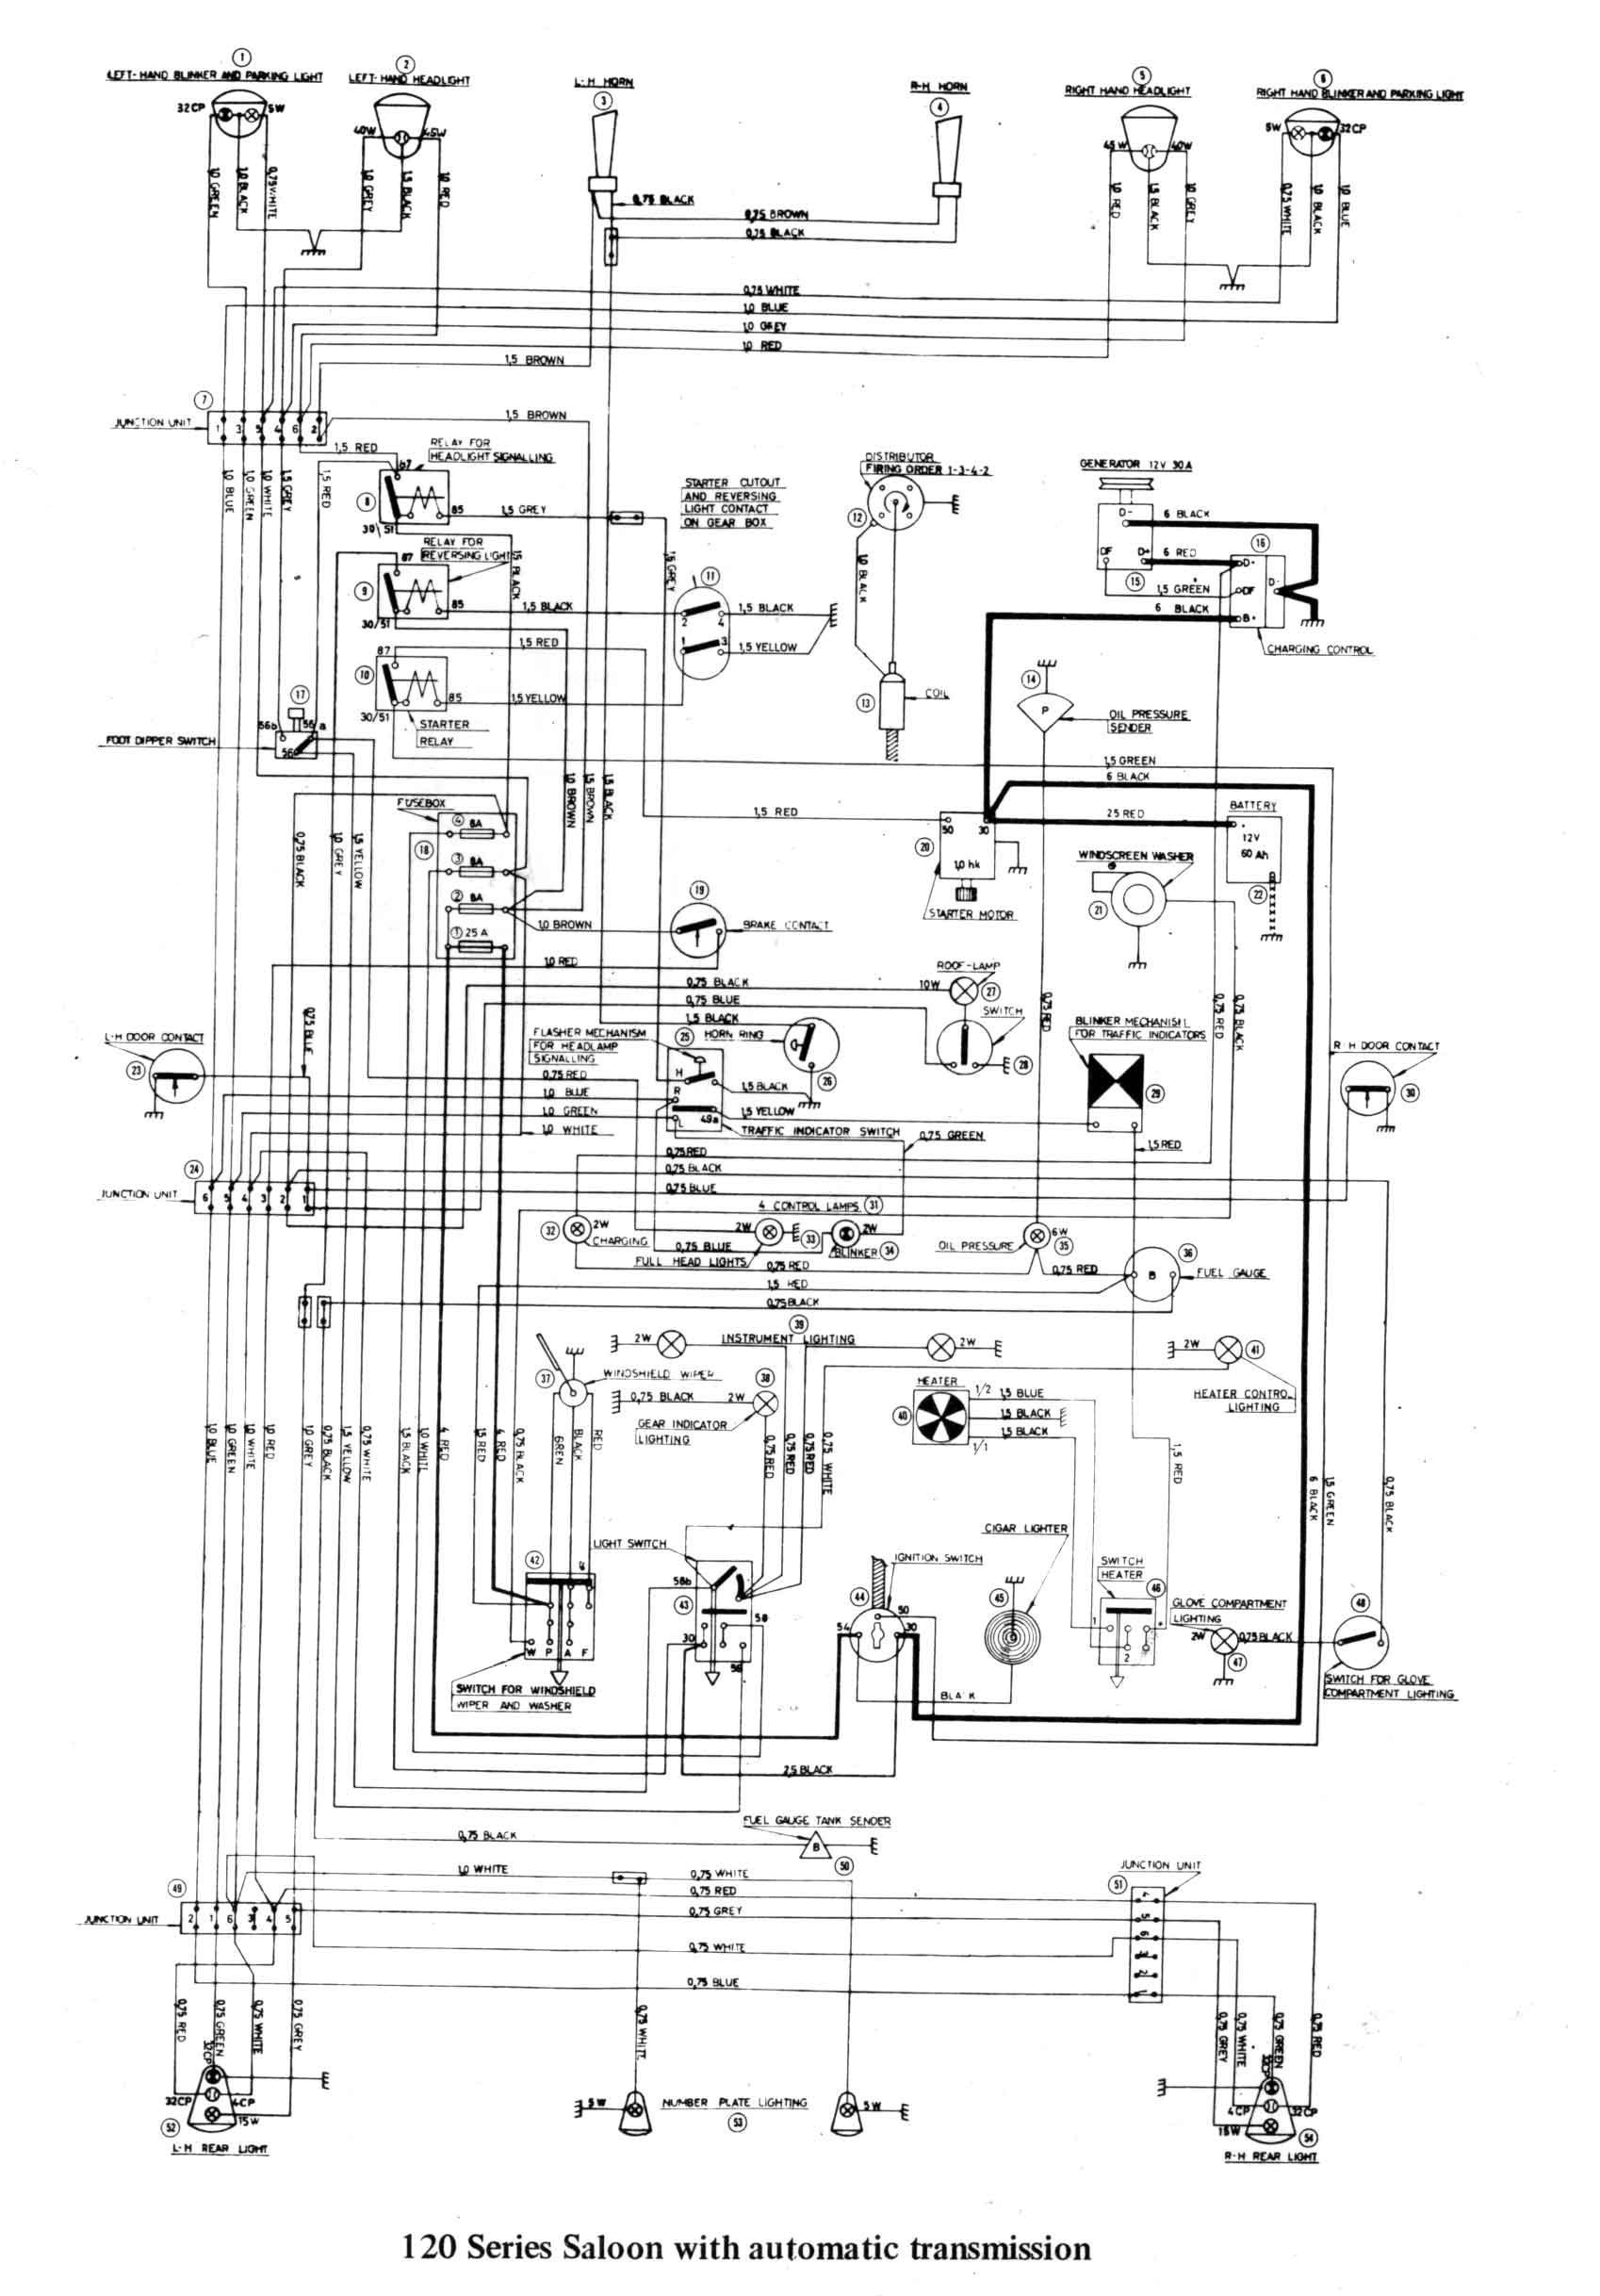 75 Chevy Alternator Wiring Diagram Trusted Schematics C10 Harness Get Free Image About Elegant 86 Mitsubishi